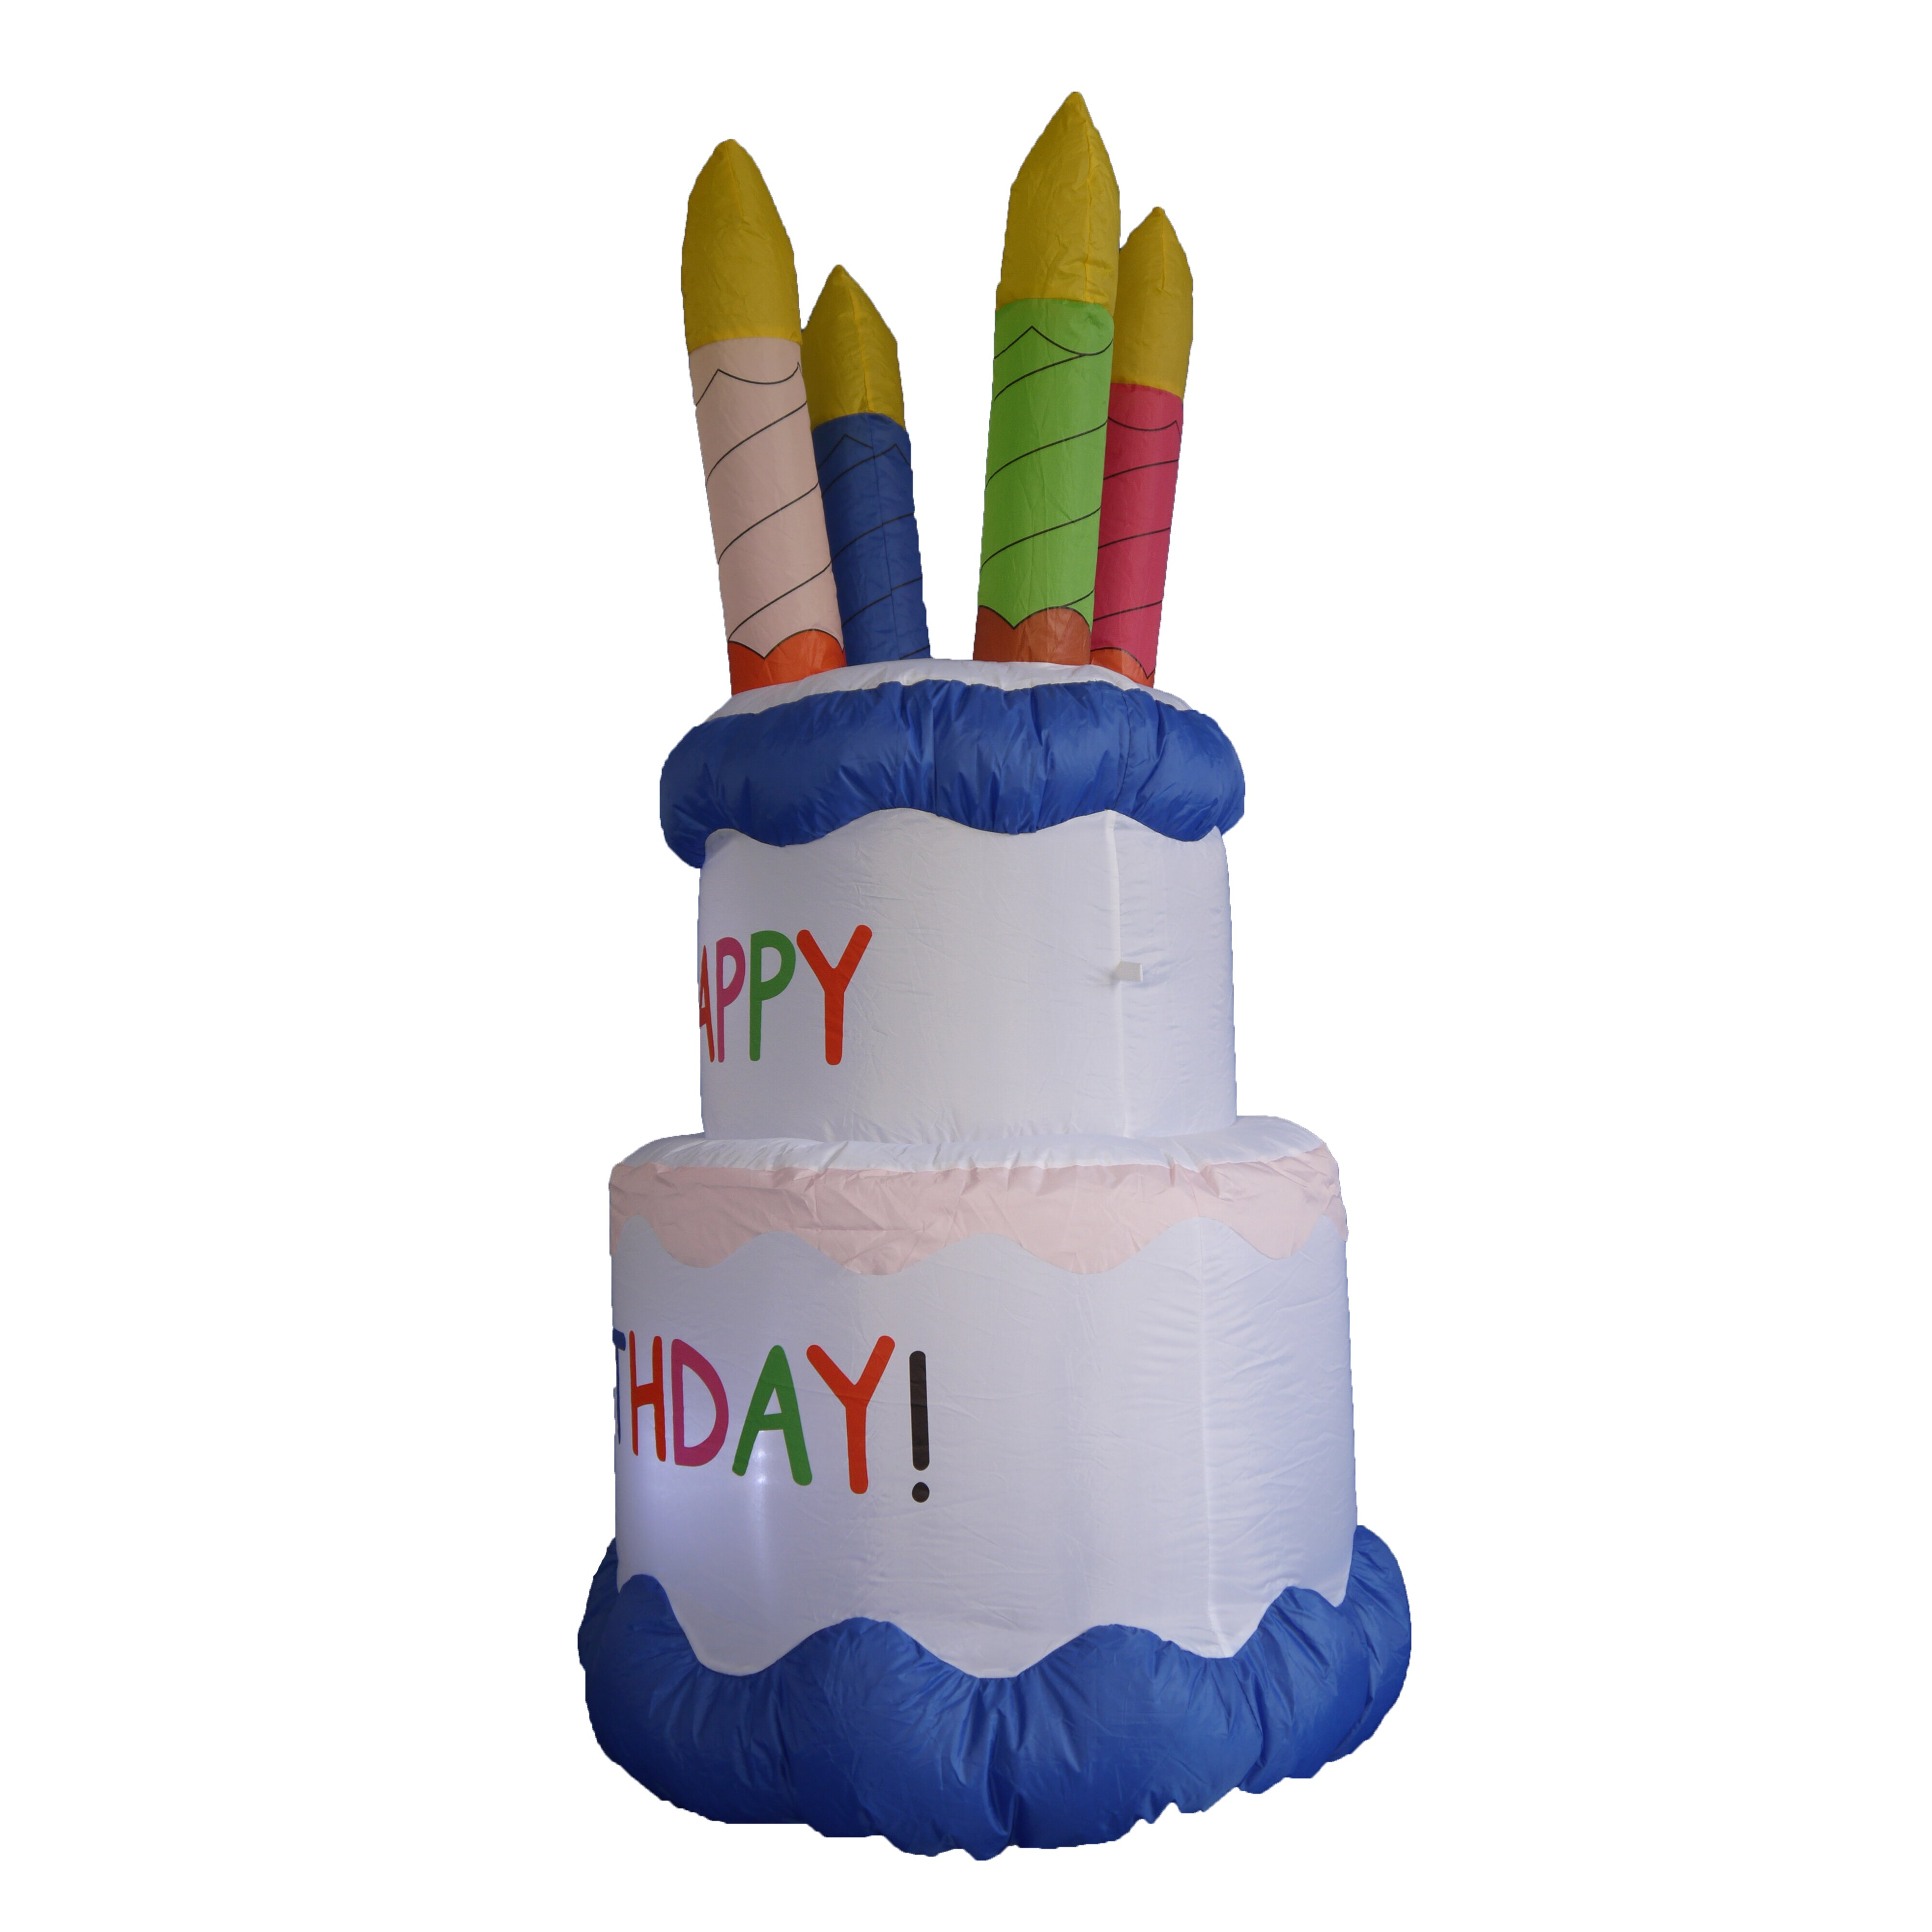 BZB Goods Inflatable Cake With Candles Happy Birthday